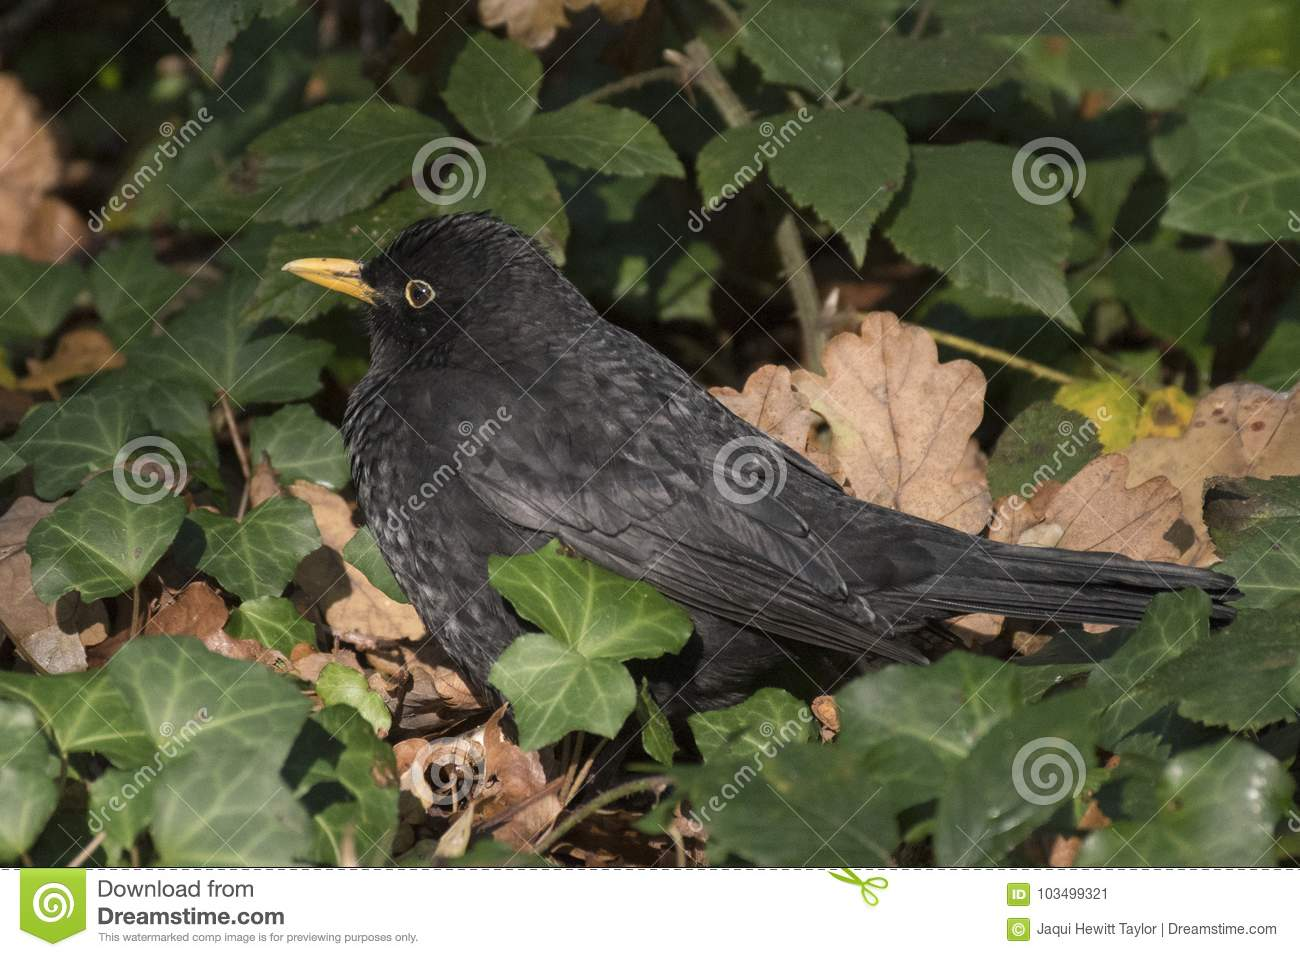 A blackbird in the ivy